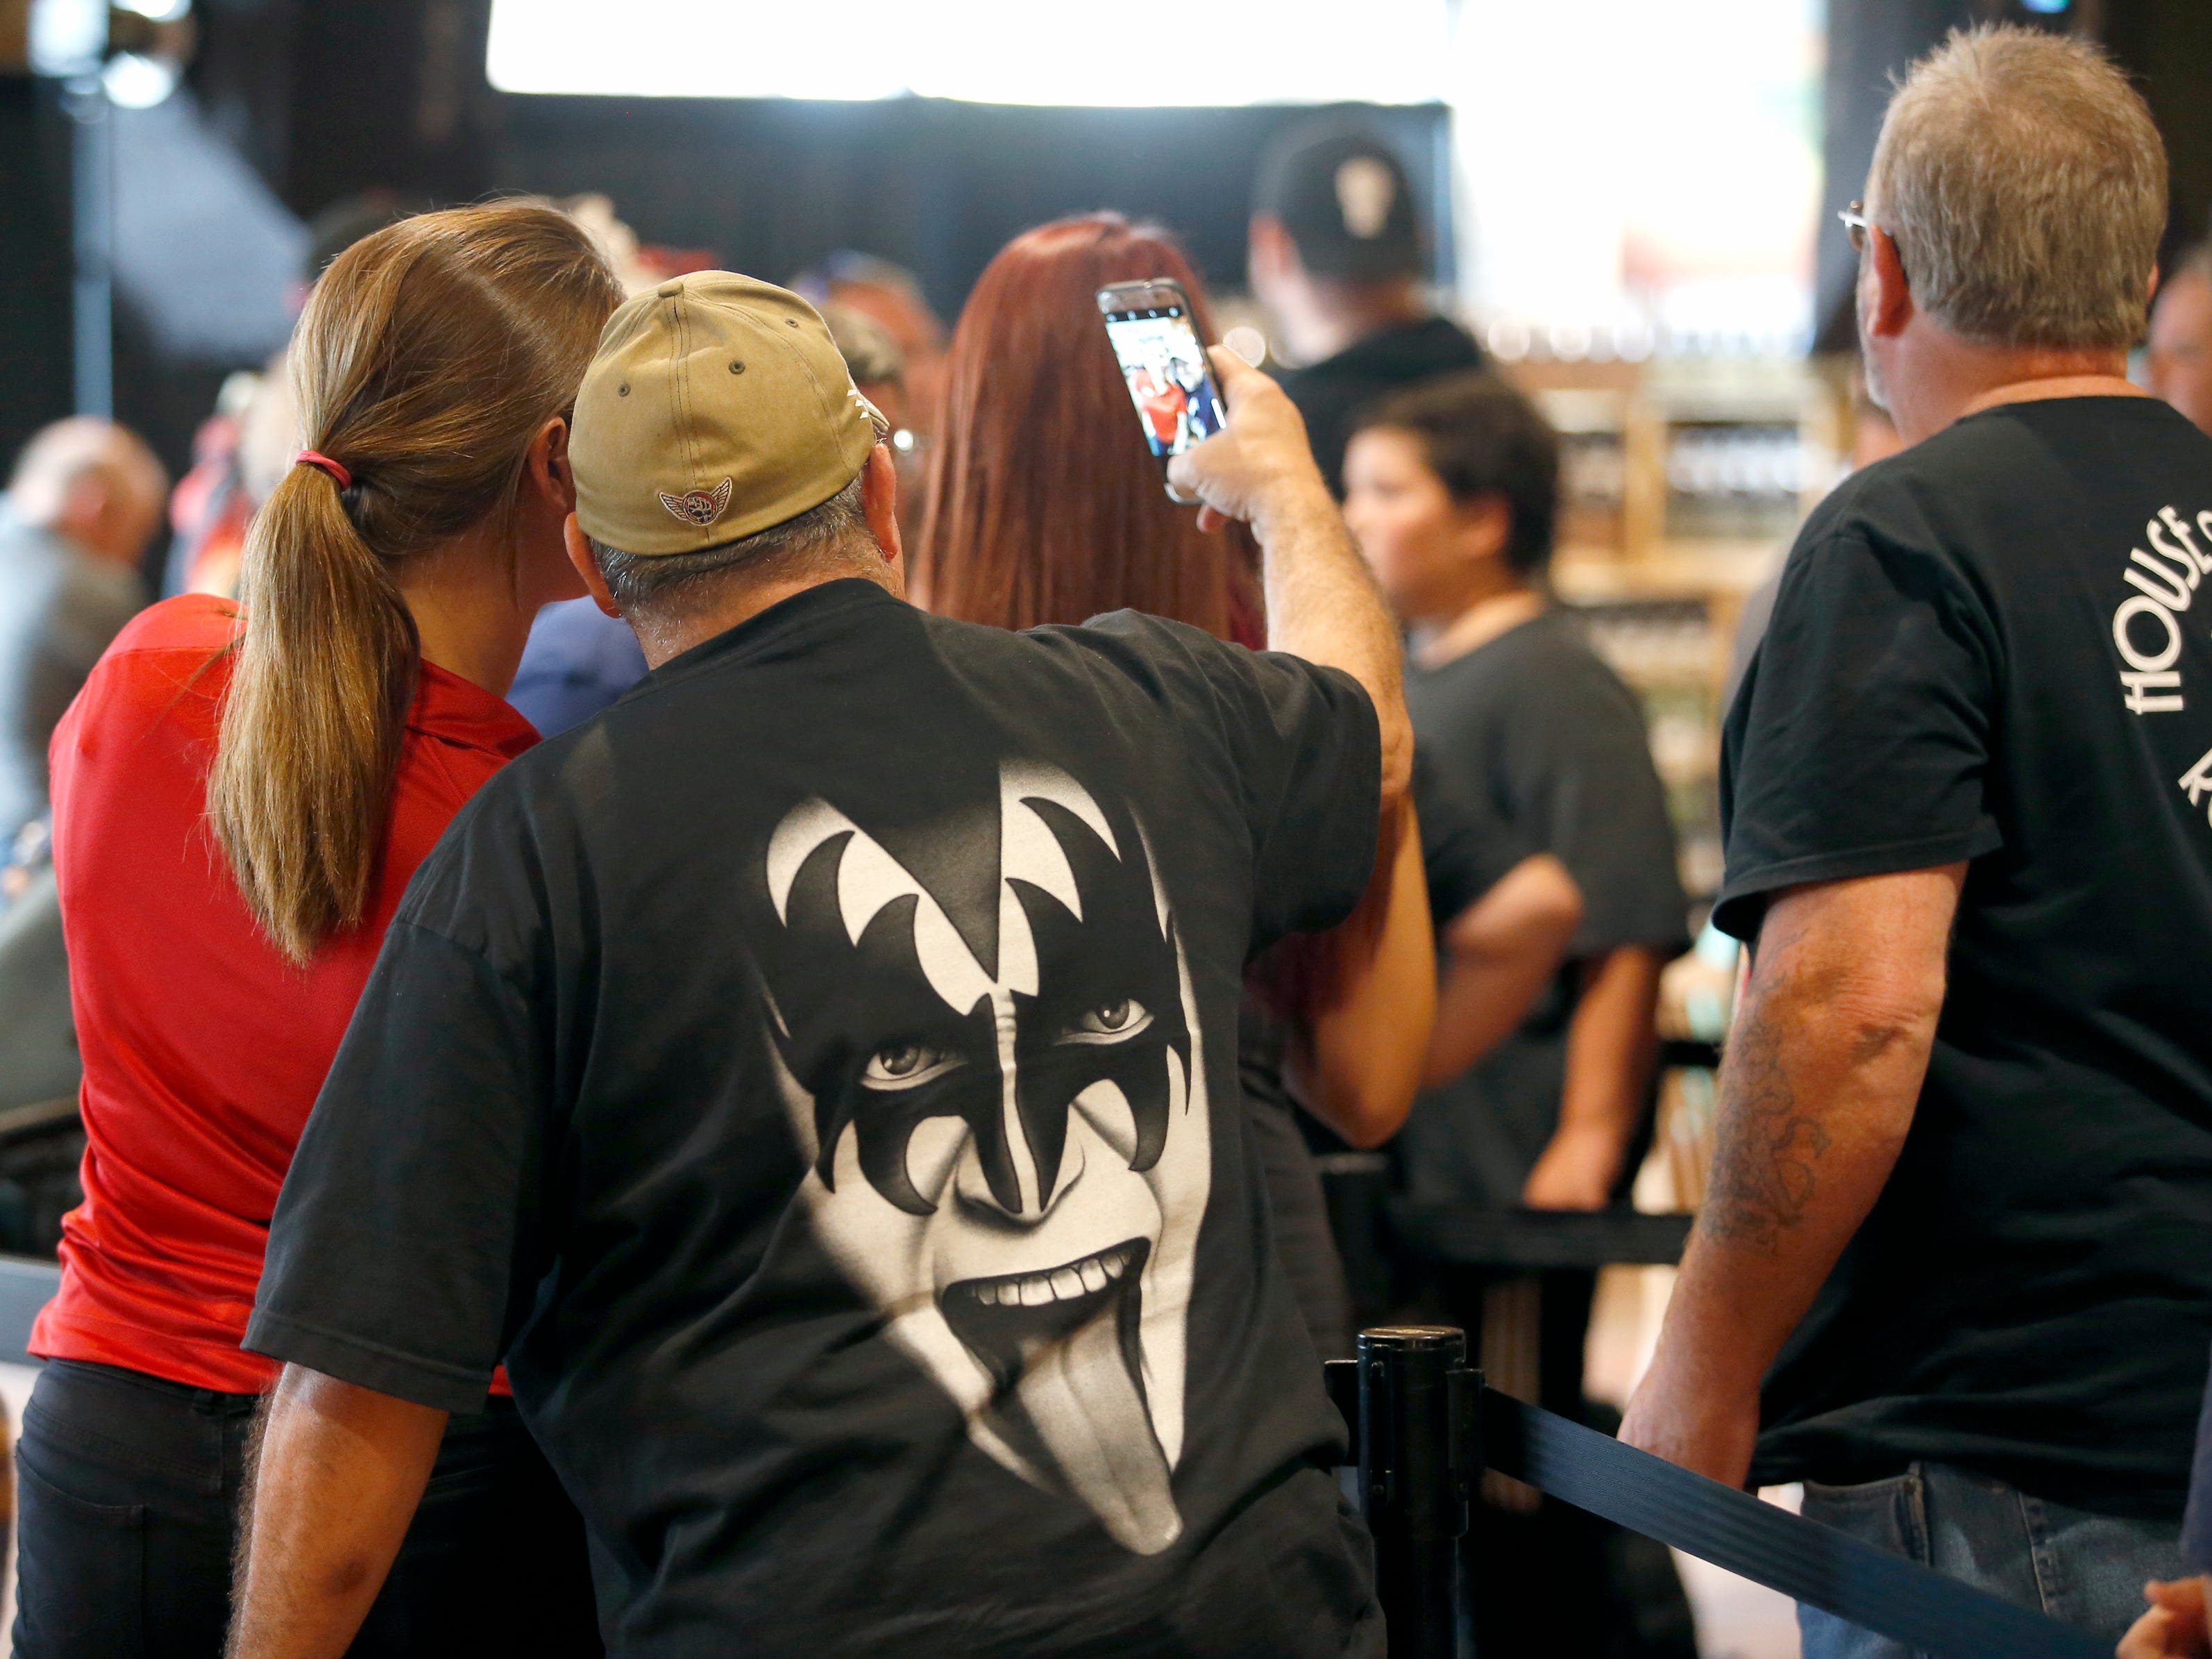 Fans try getting pictures of KISS co-founder Gene Simmons at the Chili-Paul Wegmans store to promote his MoneyBag Sodas.